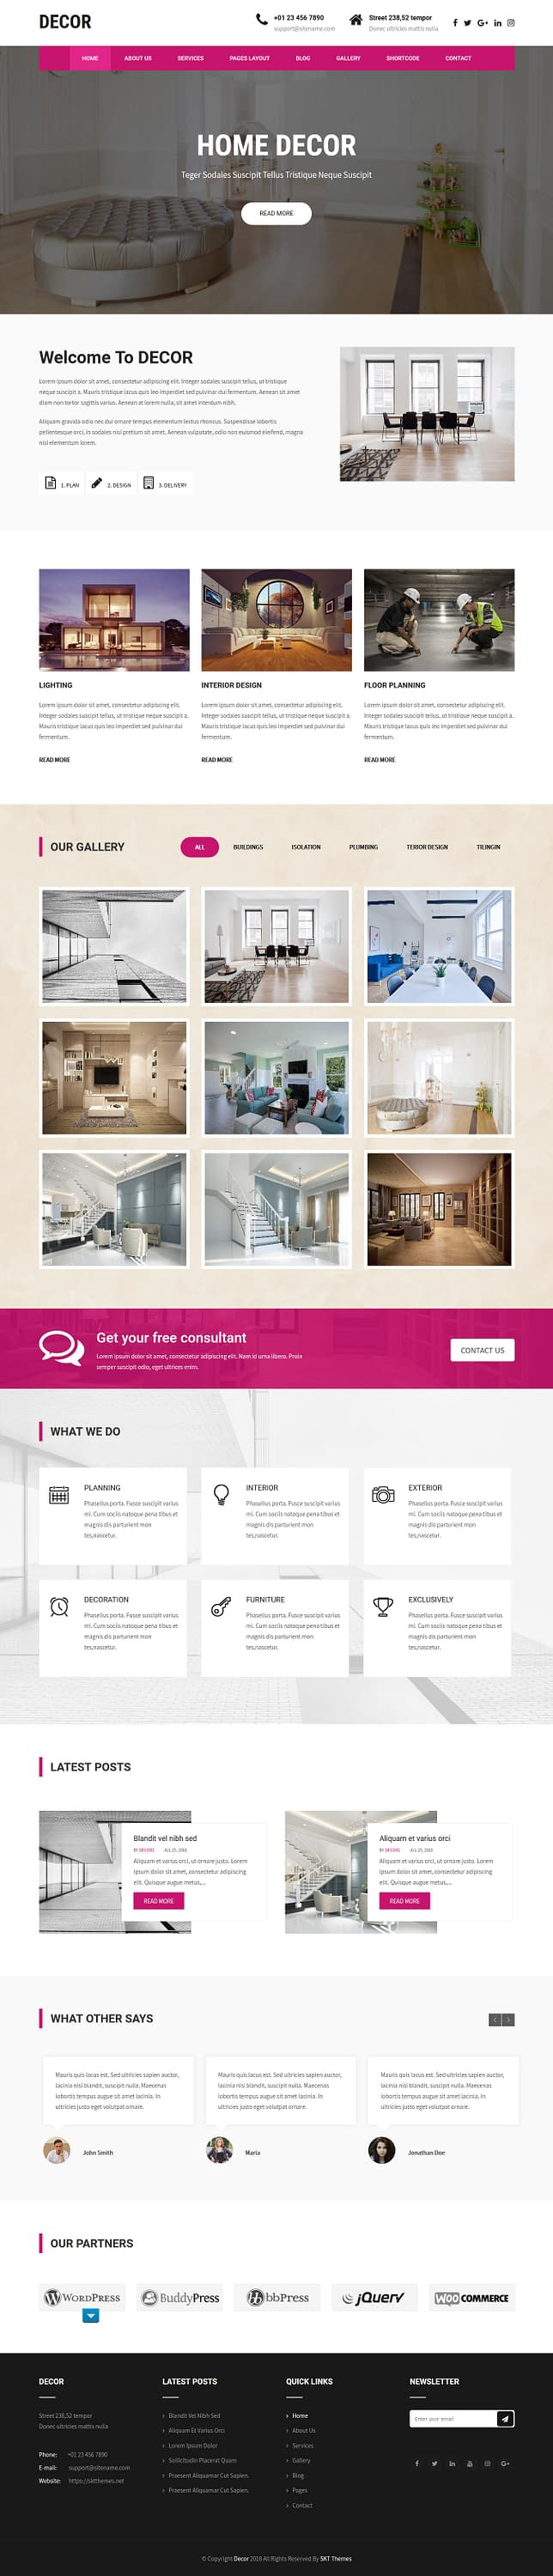 Decor Lite - Best Free Architecture WordPress Theme